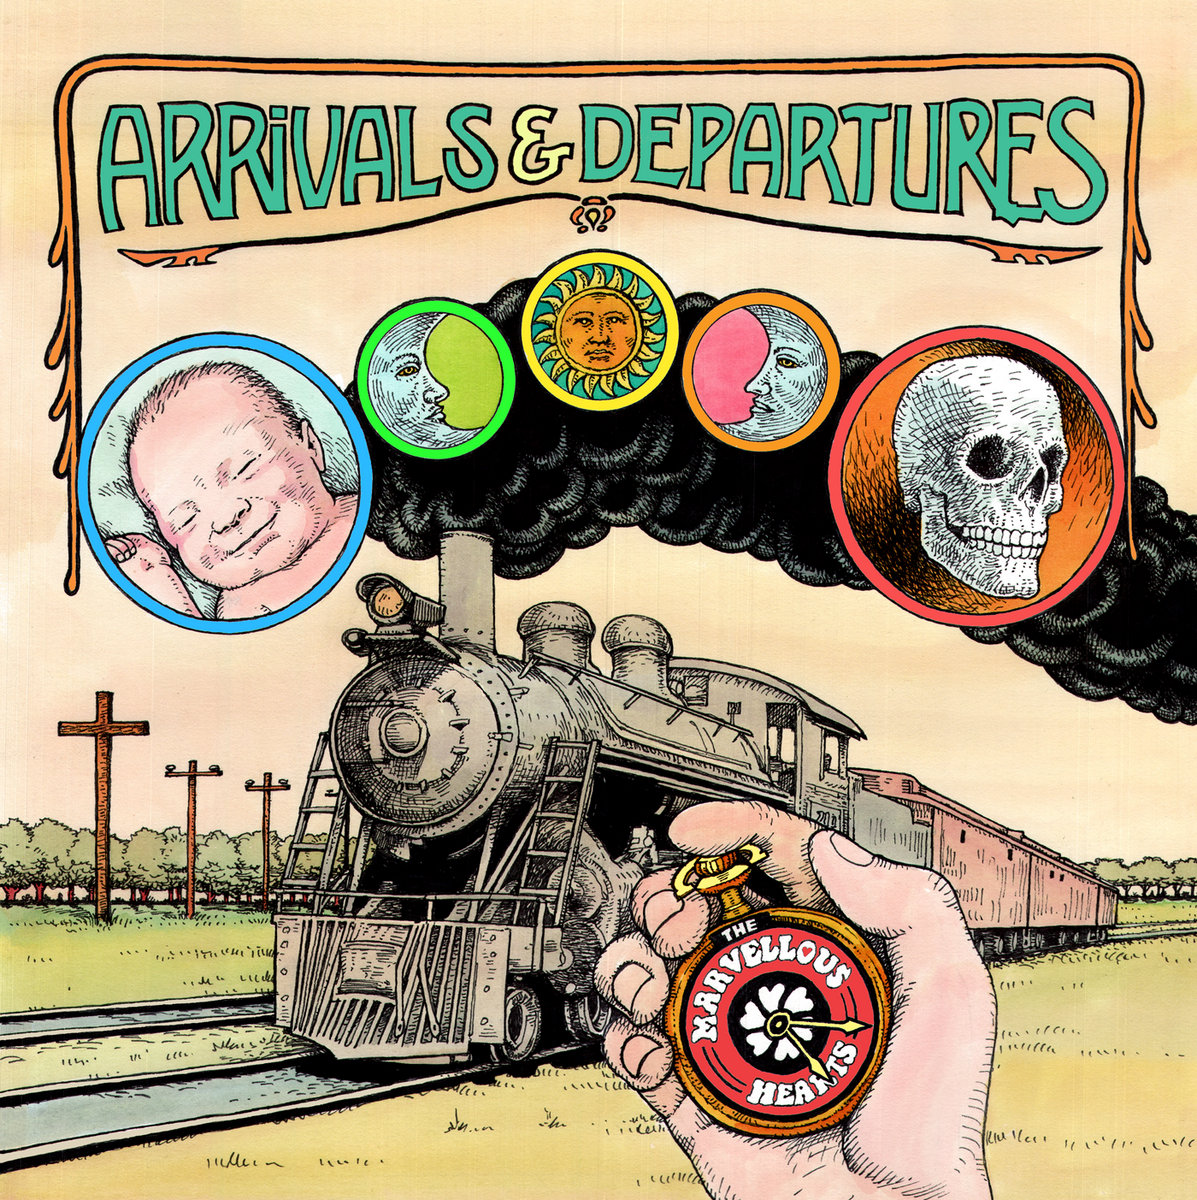 Arrivals & Departures by The Marvellous Hearts